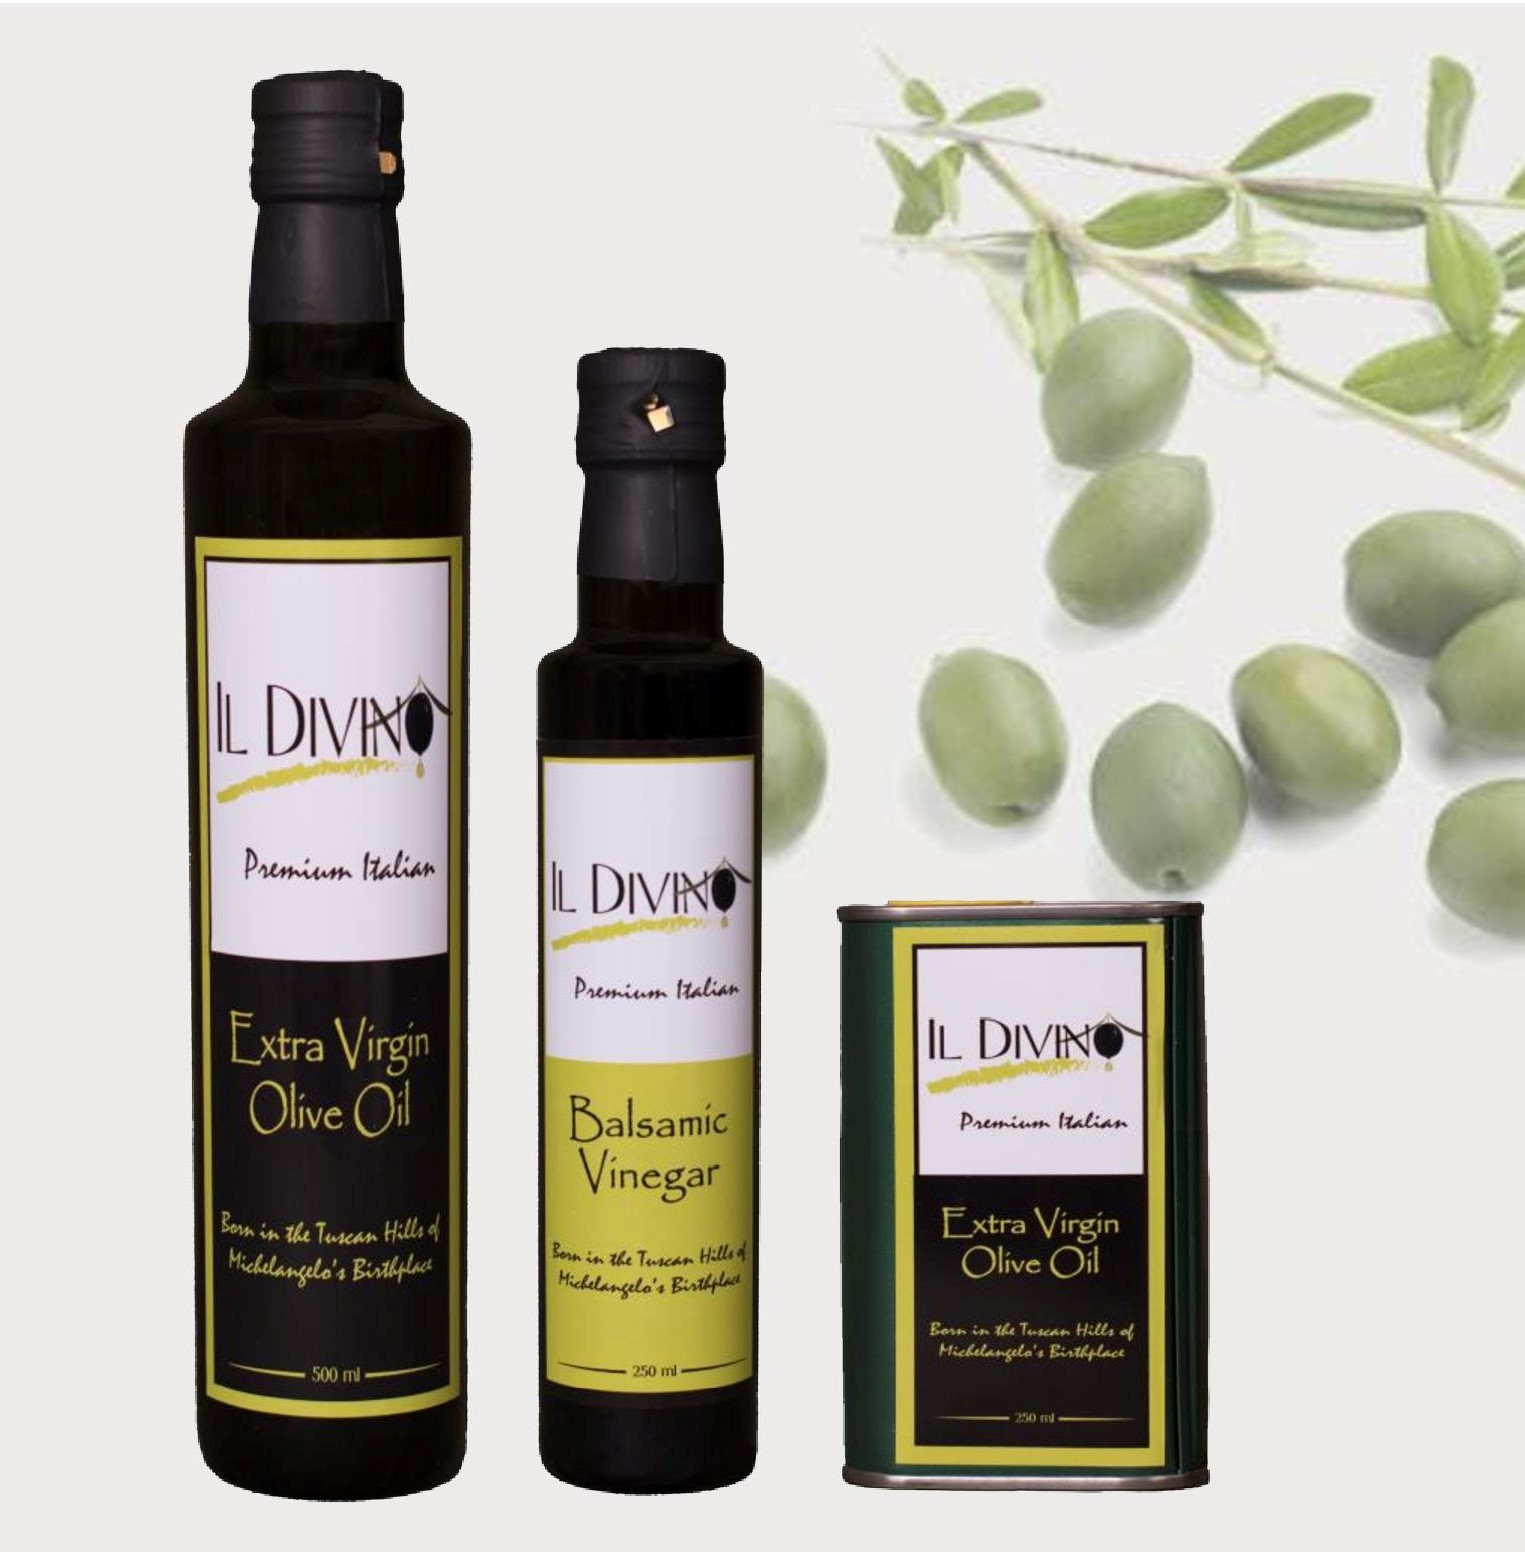 IL DIVINO Extra Virgin Olive Oil Products